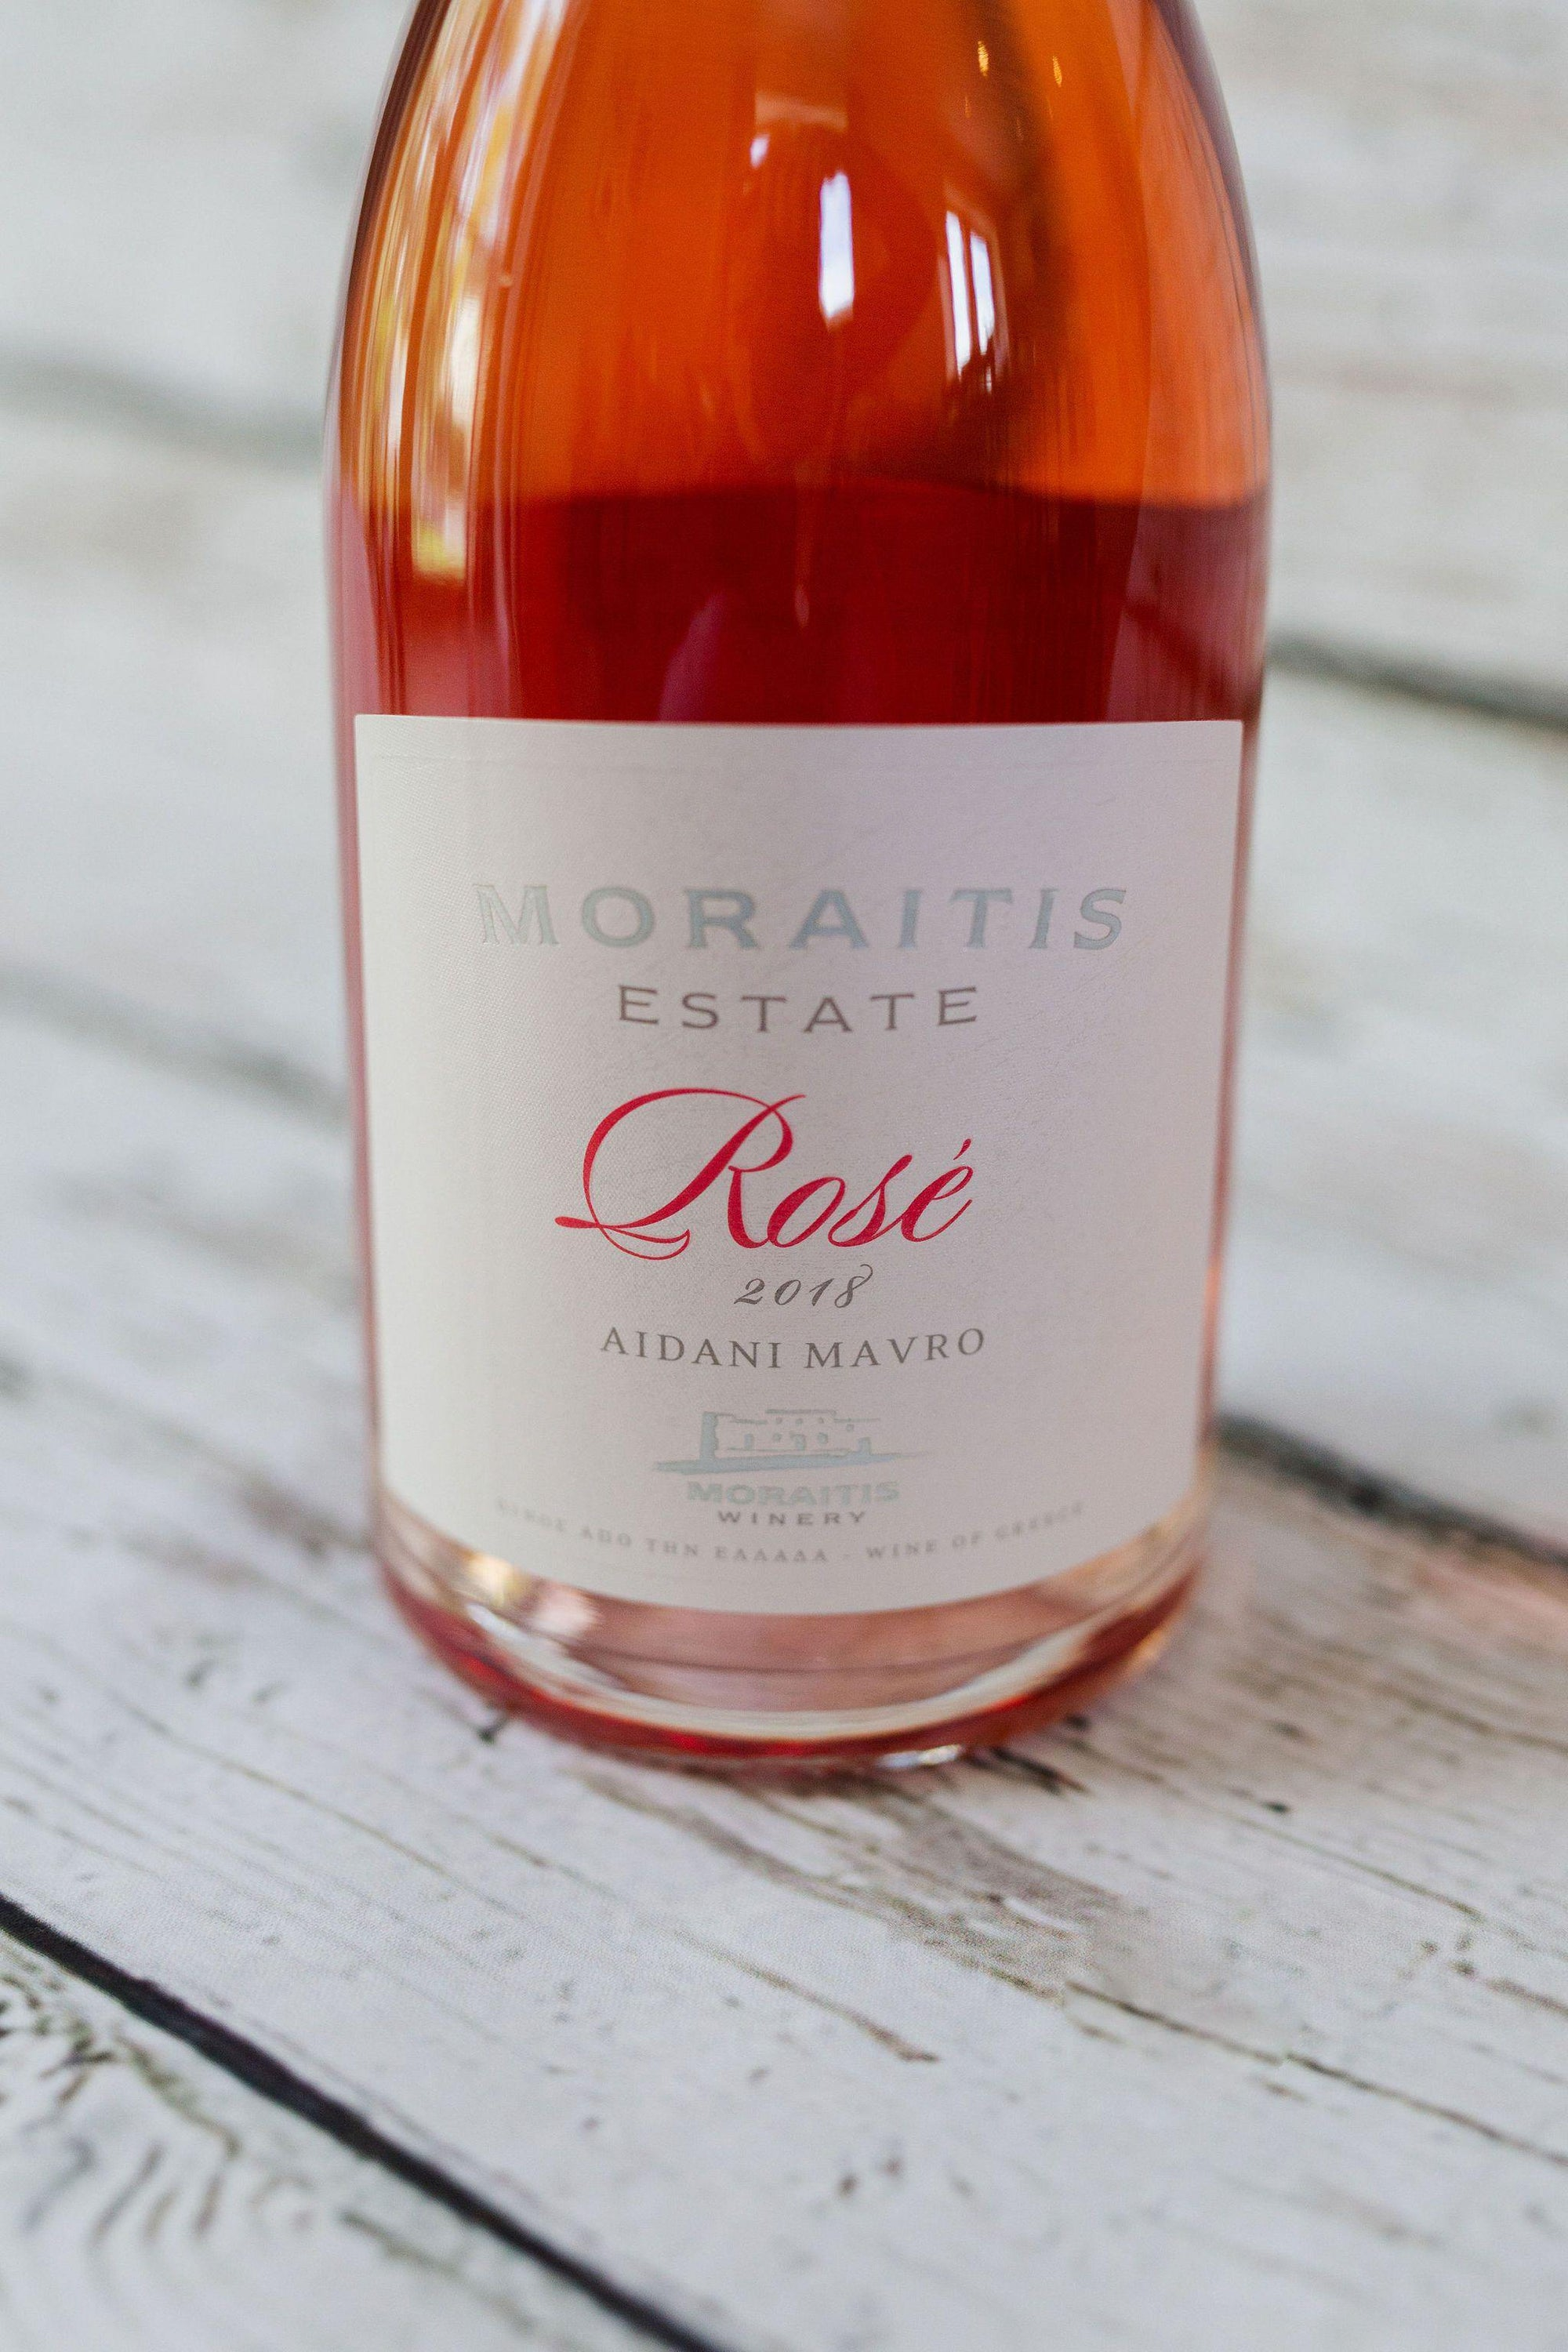 750ml clear glass bottle of Moraitis Rosé Wine with front label and silver foil cap